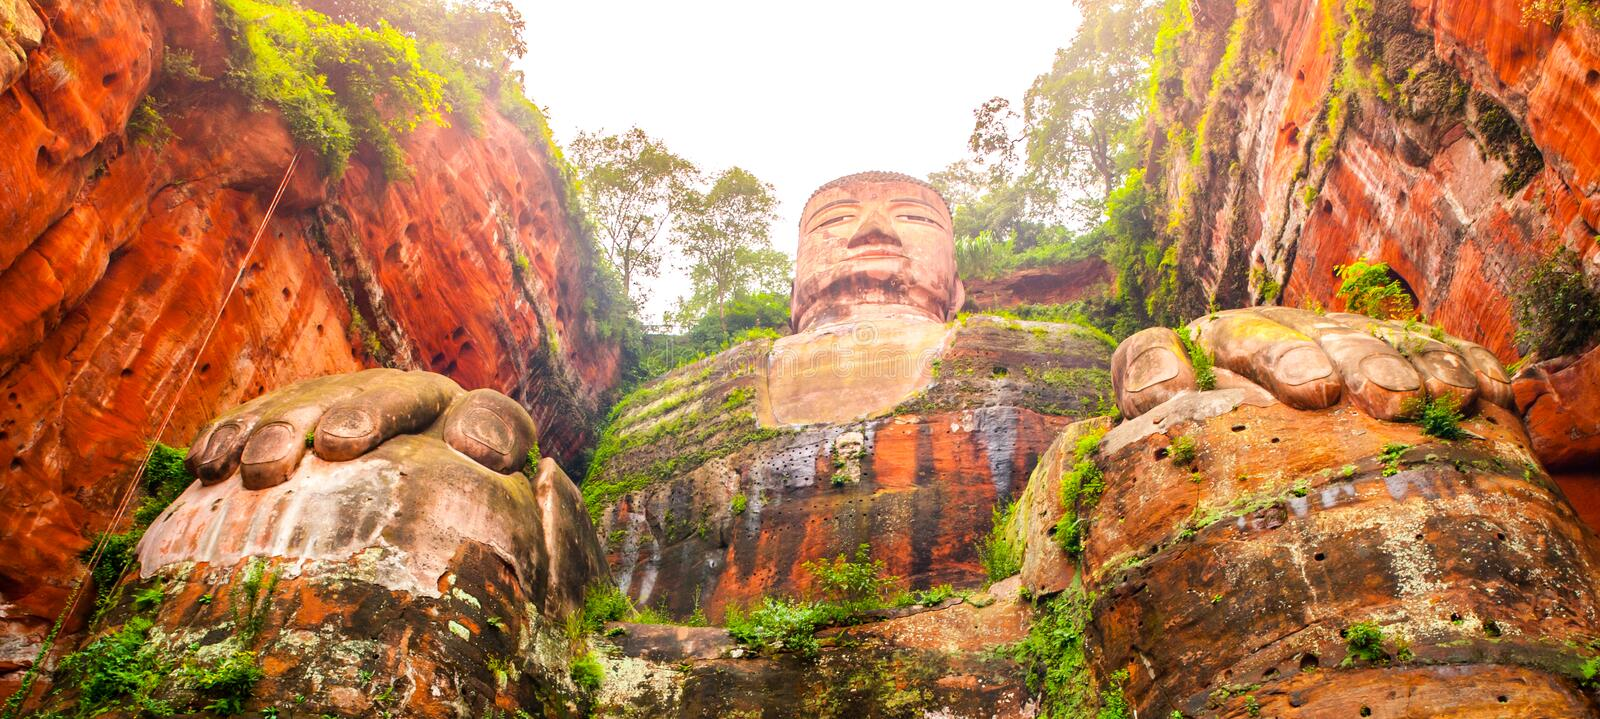 Giant Buddha in Leshan, Sichuan, China, view from bottom. Giant Buddha in Leshan, Sichuan, China, view from bottom royalty free stock images